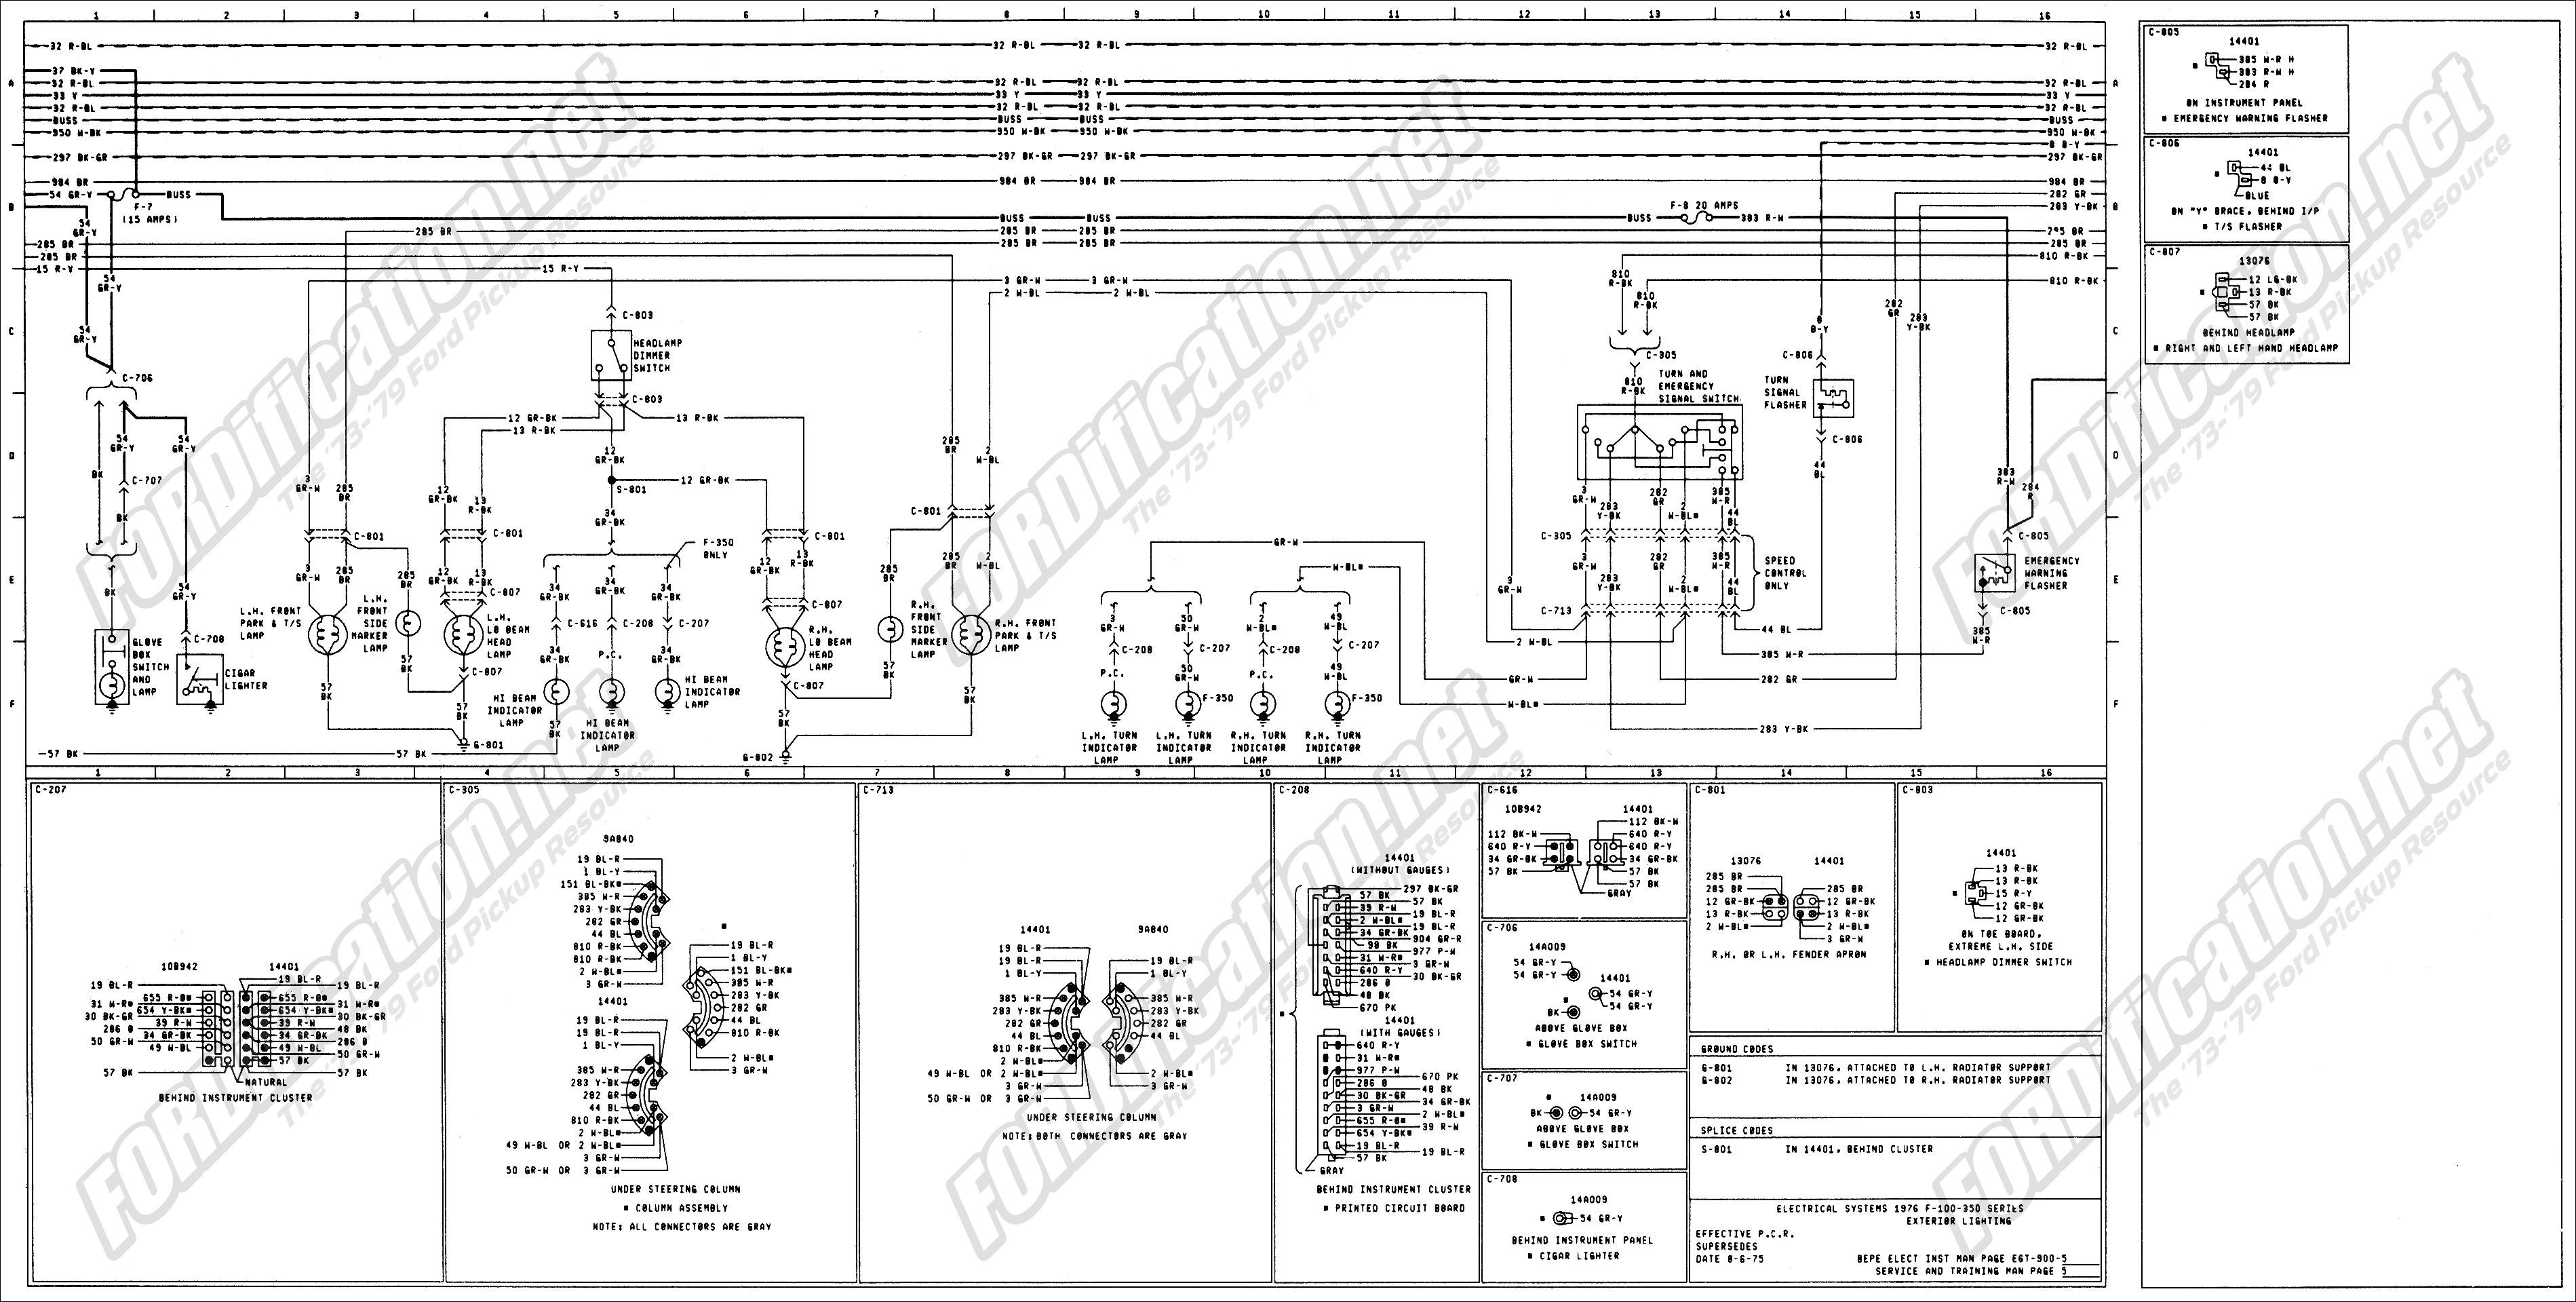 1978 f100 ford ranger wiring data diagram schematic  78 f100 wiring diagram manual e book 1978 f100 ford ranger wiring